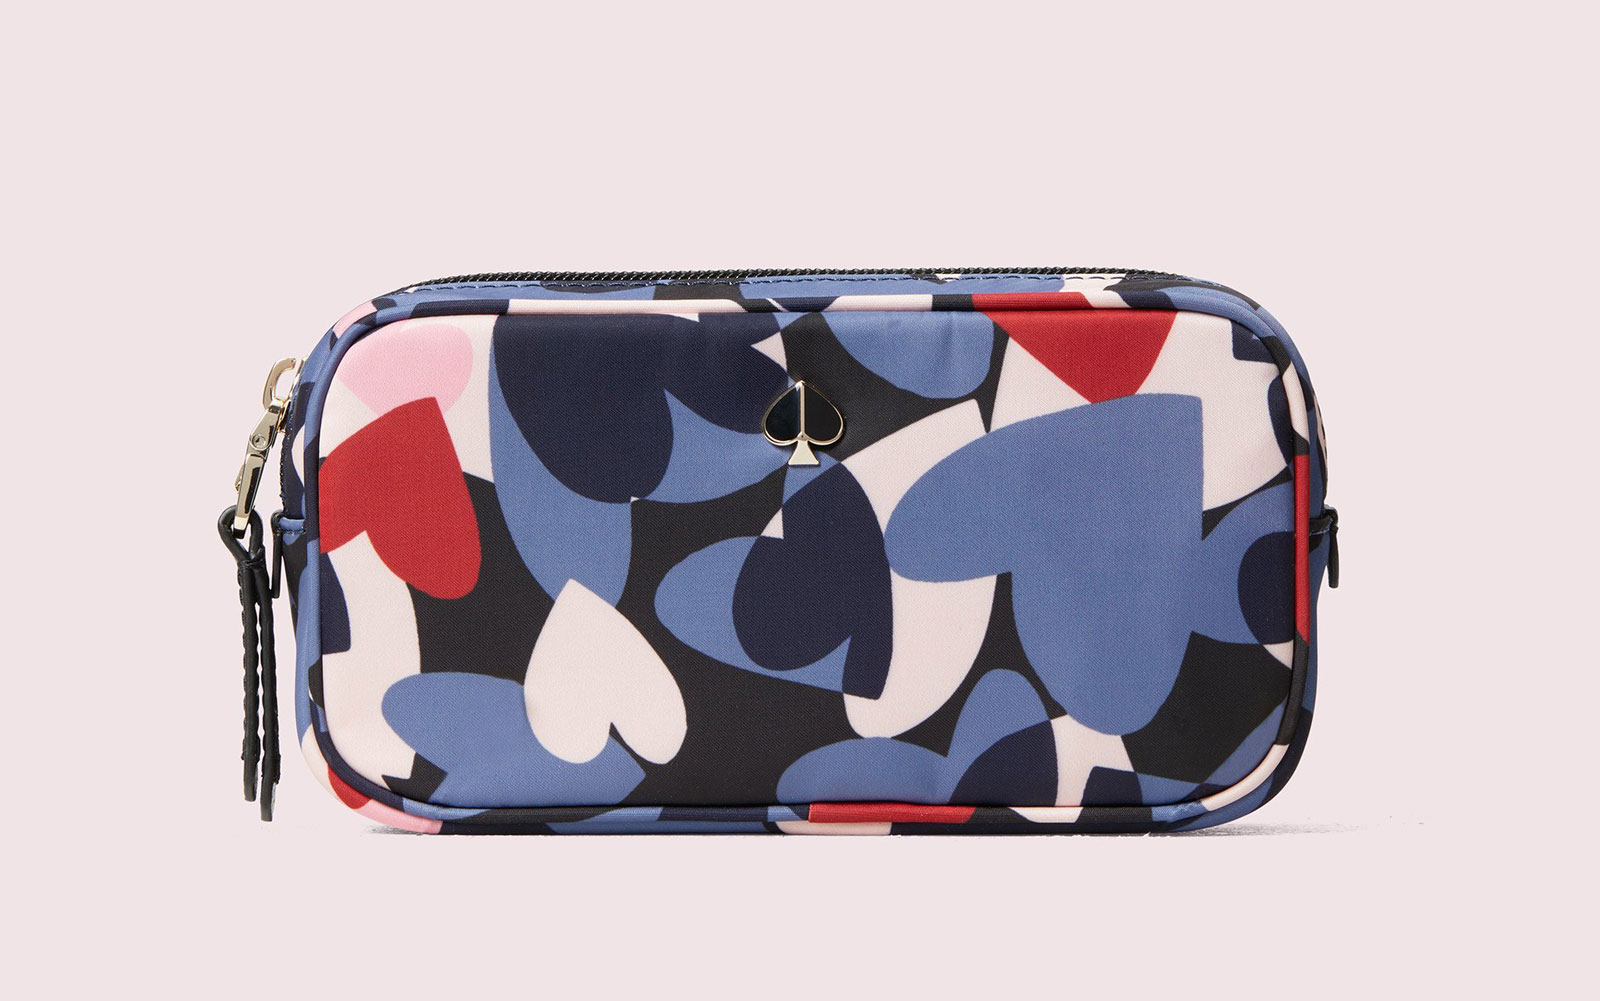 Multi-colored Heart Patterned Makeup Bag